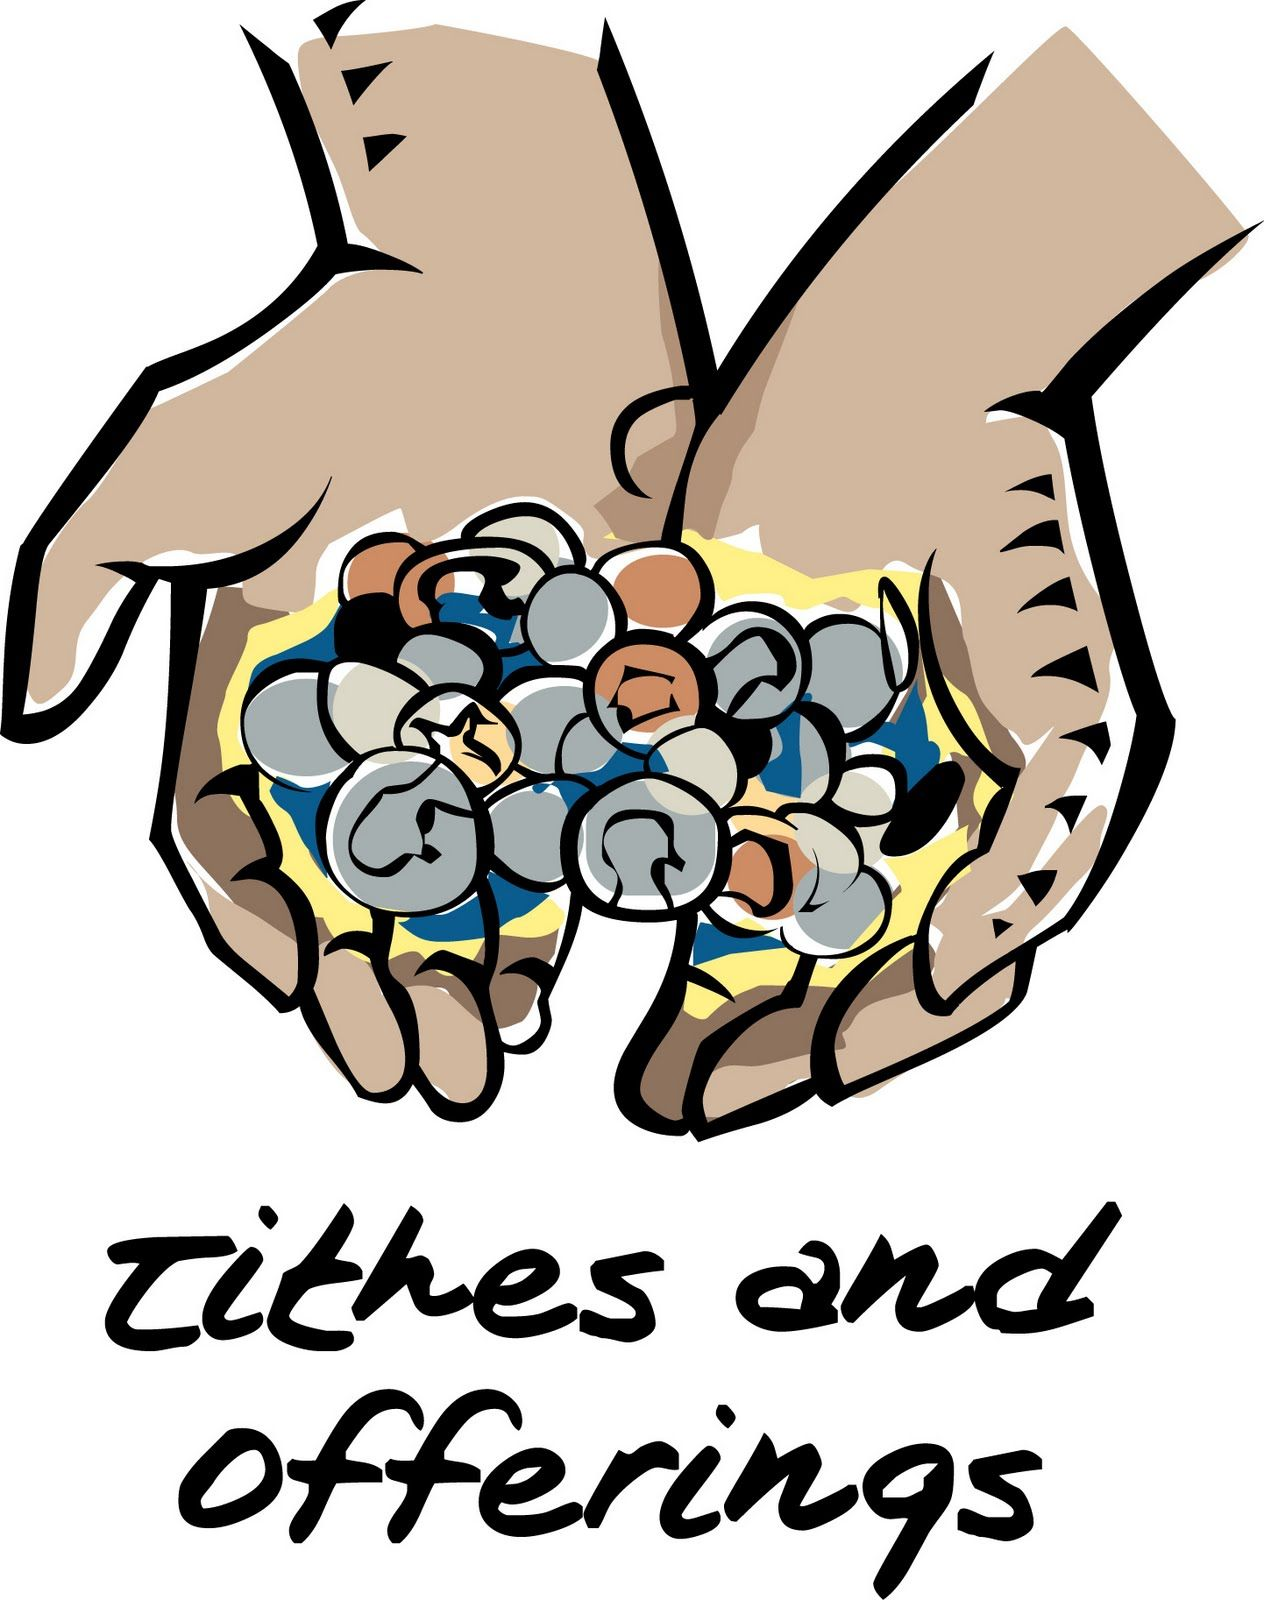 Tithes and offering clipart transparent download clip art tithing | Displaying 18> Images For - Church ... transparent download